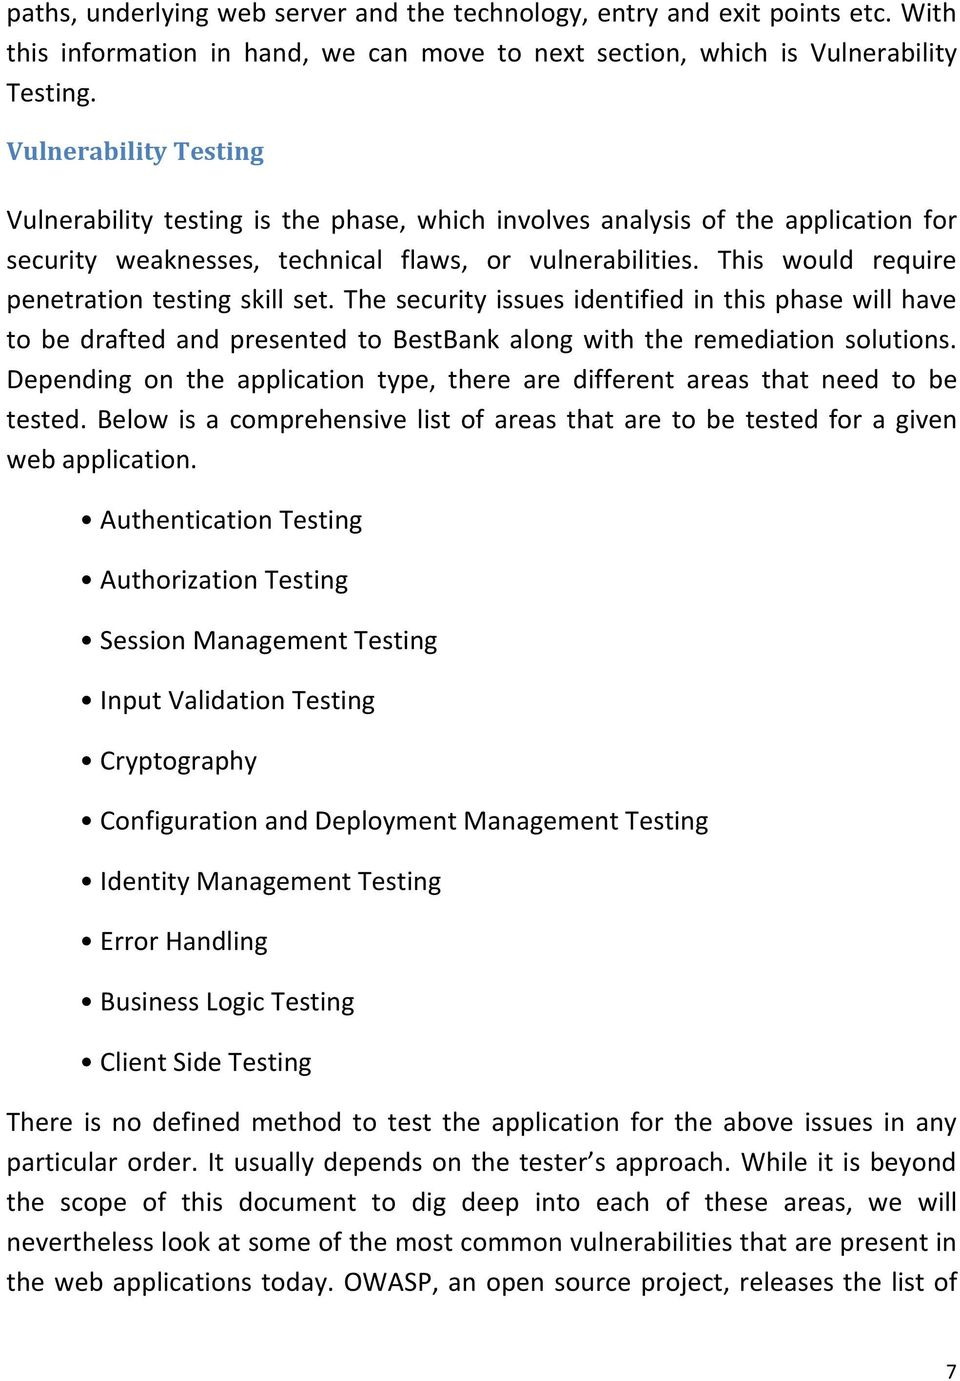 This would require penetration testing skill set. The security issues identified in this phase will have to be drafted and presented to BestBank along with the remediation solutions.